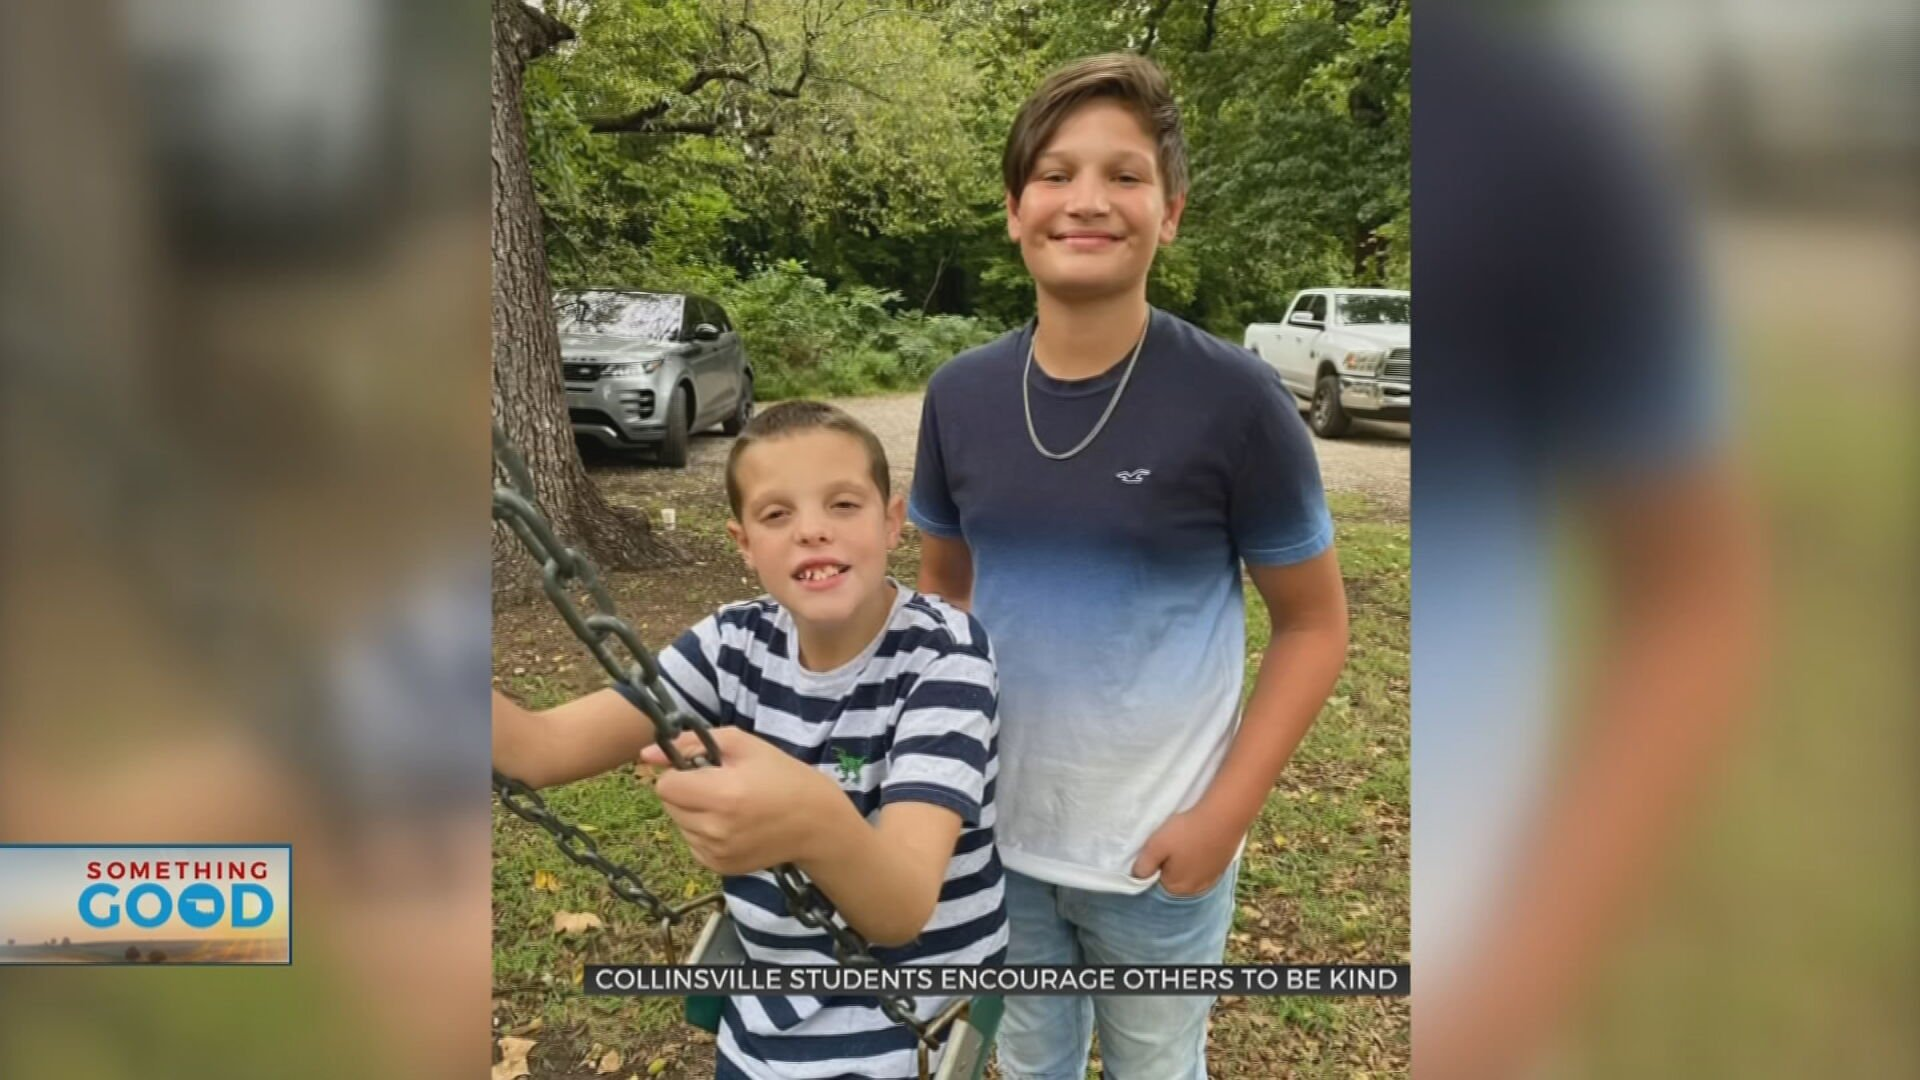 Collinsville Kids' Friendship Begins With Unexpected Act Of Kindness